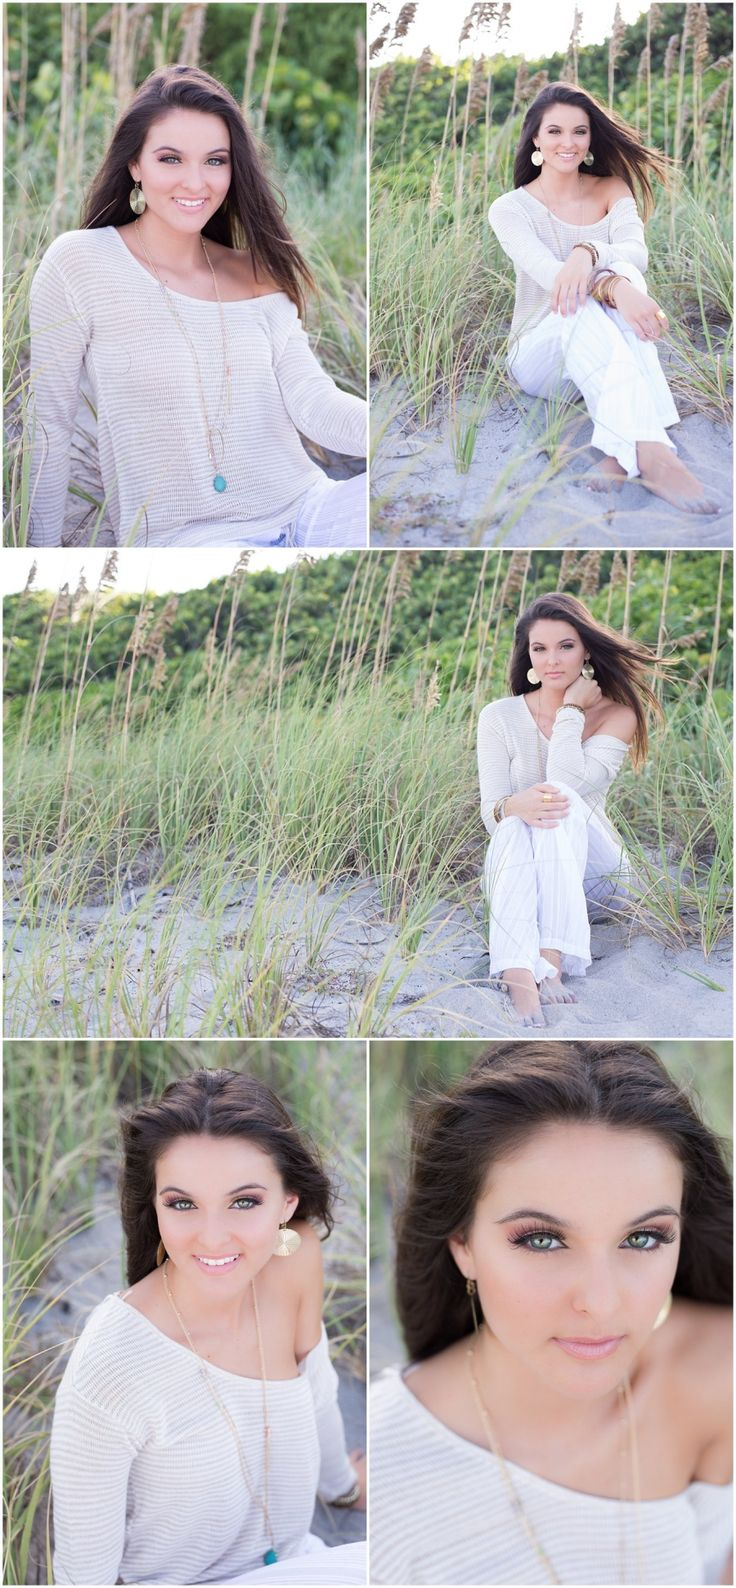 florida senior portrait photography, lifestyle photography, beach senior portraits, dune senior portraits